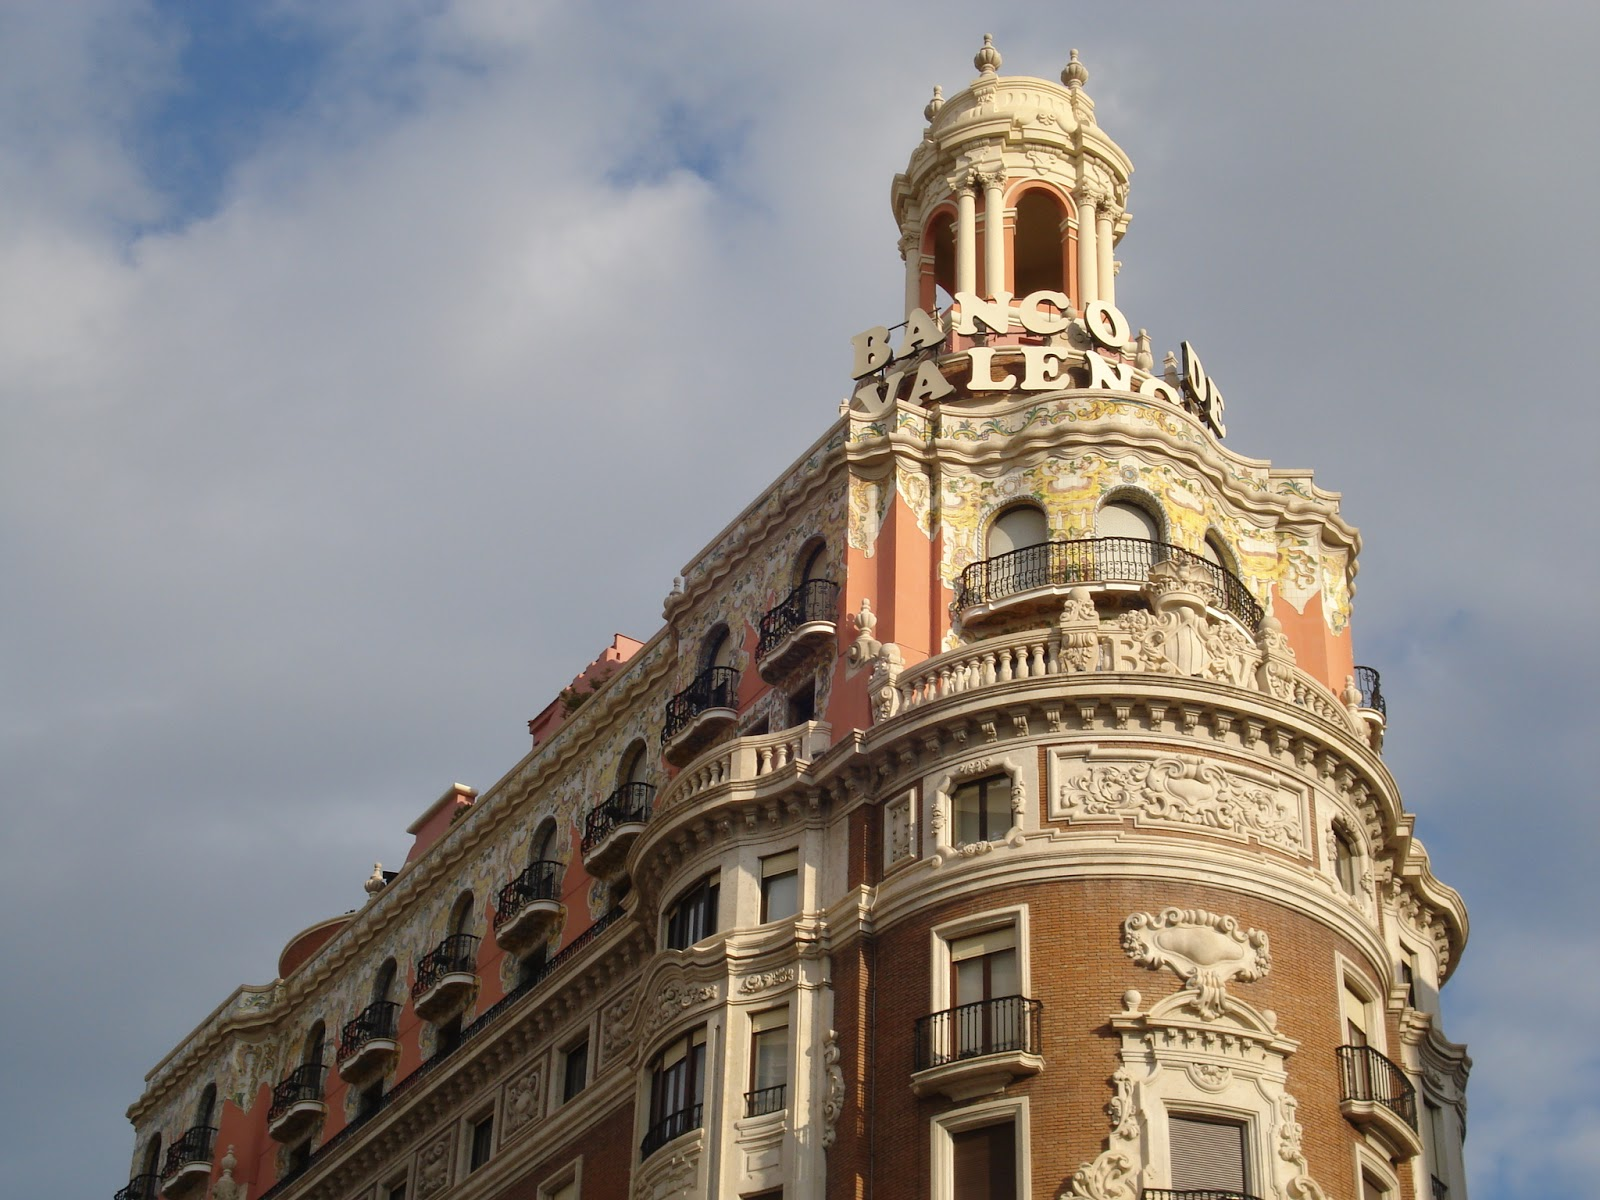 while strolling around the city center be sure to look up so as to see the